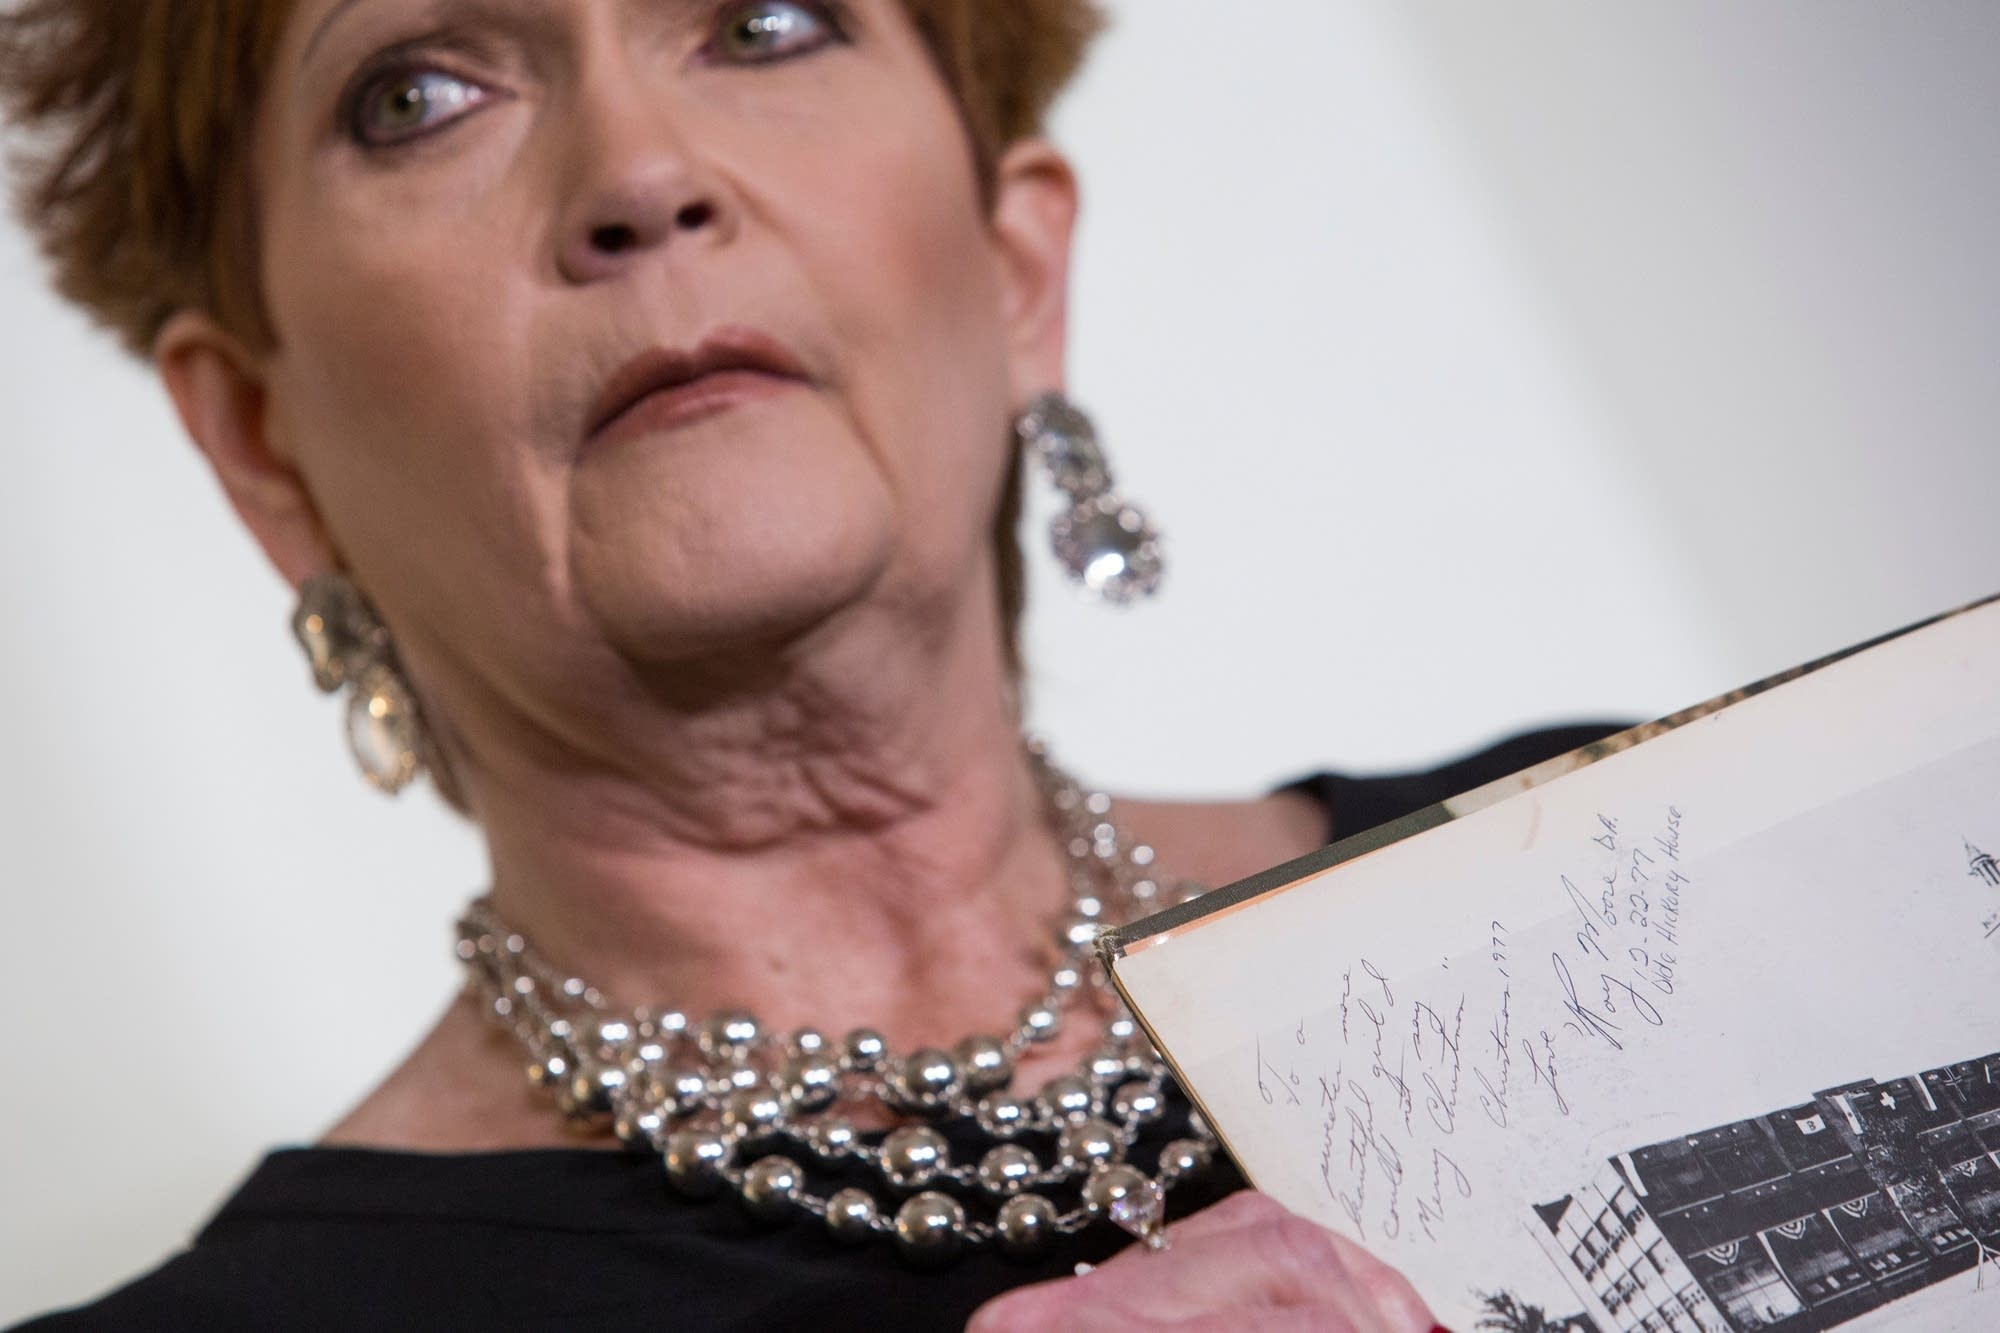 Beverly Young Nelson holds up a picture showing a message from Roy Moore.